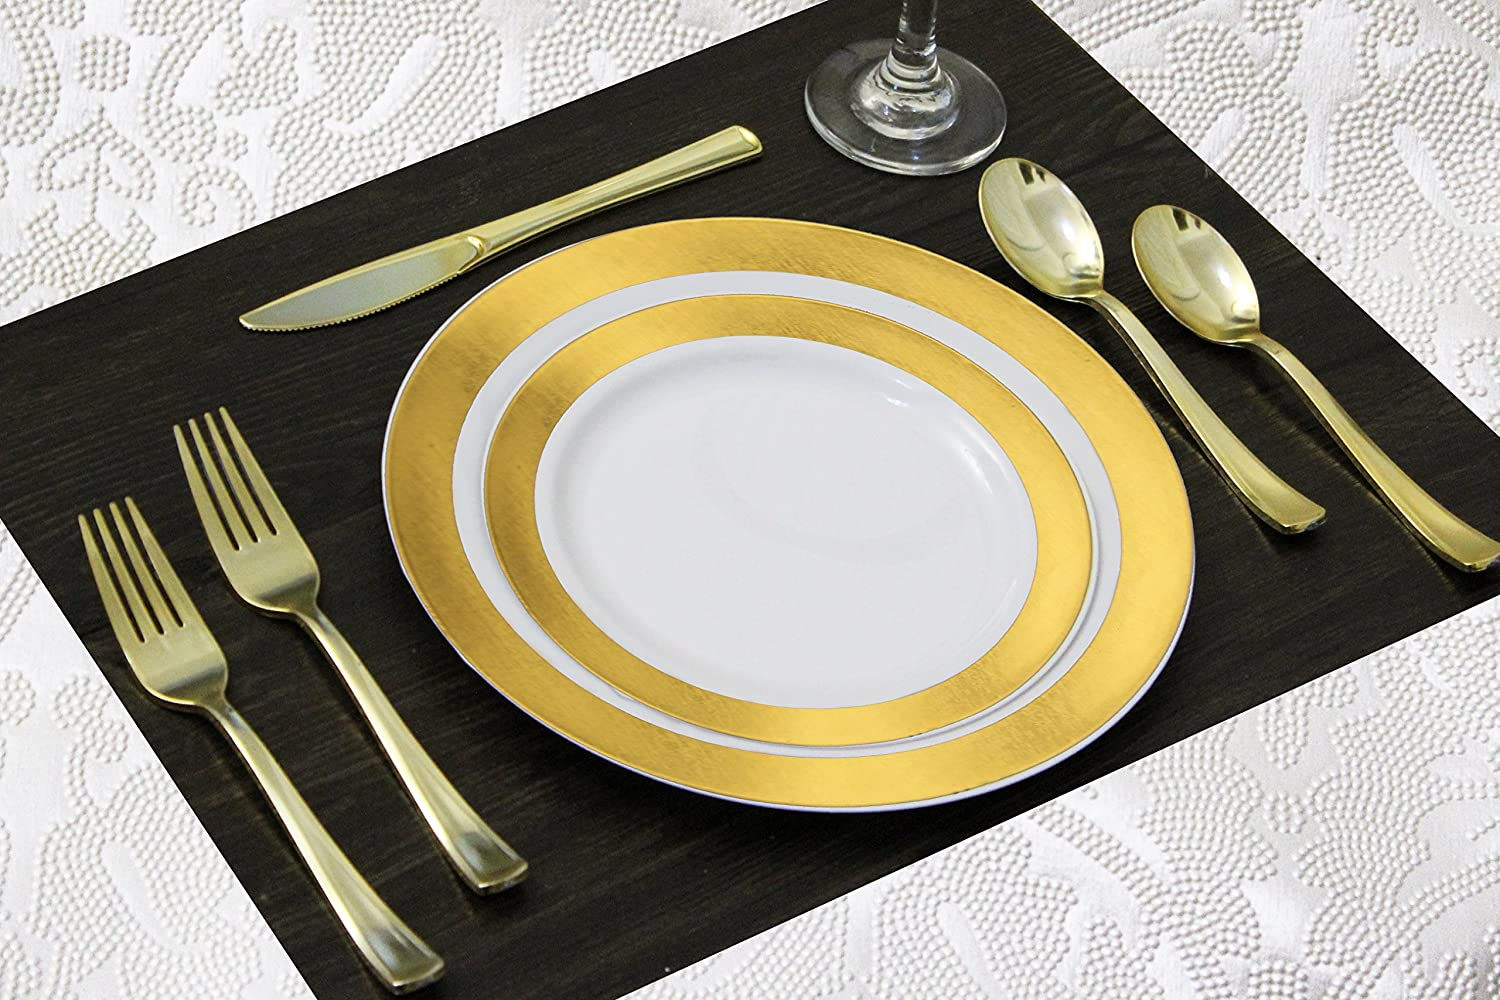 240 Disposable Plastic Plates for Parties Set | 40 10 Dinner Plates, 40 7.5 Salad/Dessert Plate, 80 Forks, 40 Knives, 40 Spoons | Excellent for Weddings, Bridal Showers, Birthday & More | Gold Rim | 91uISuQriML